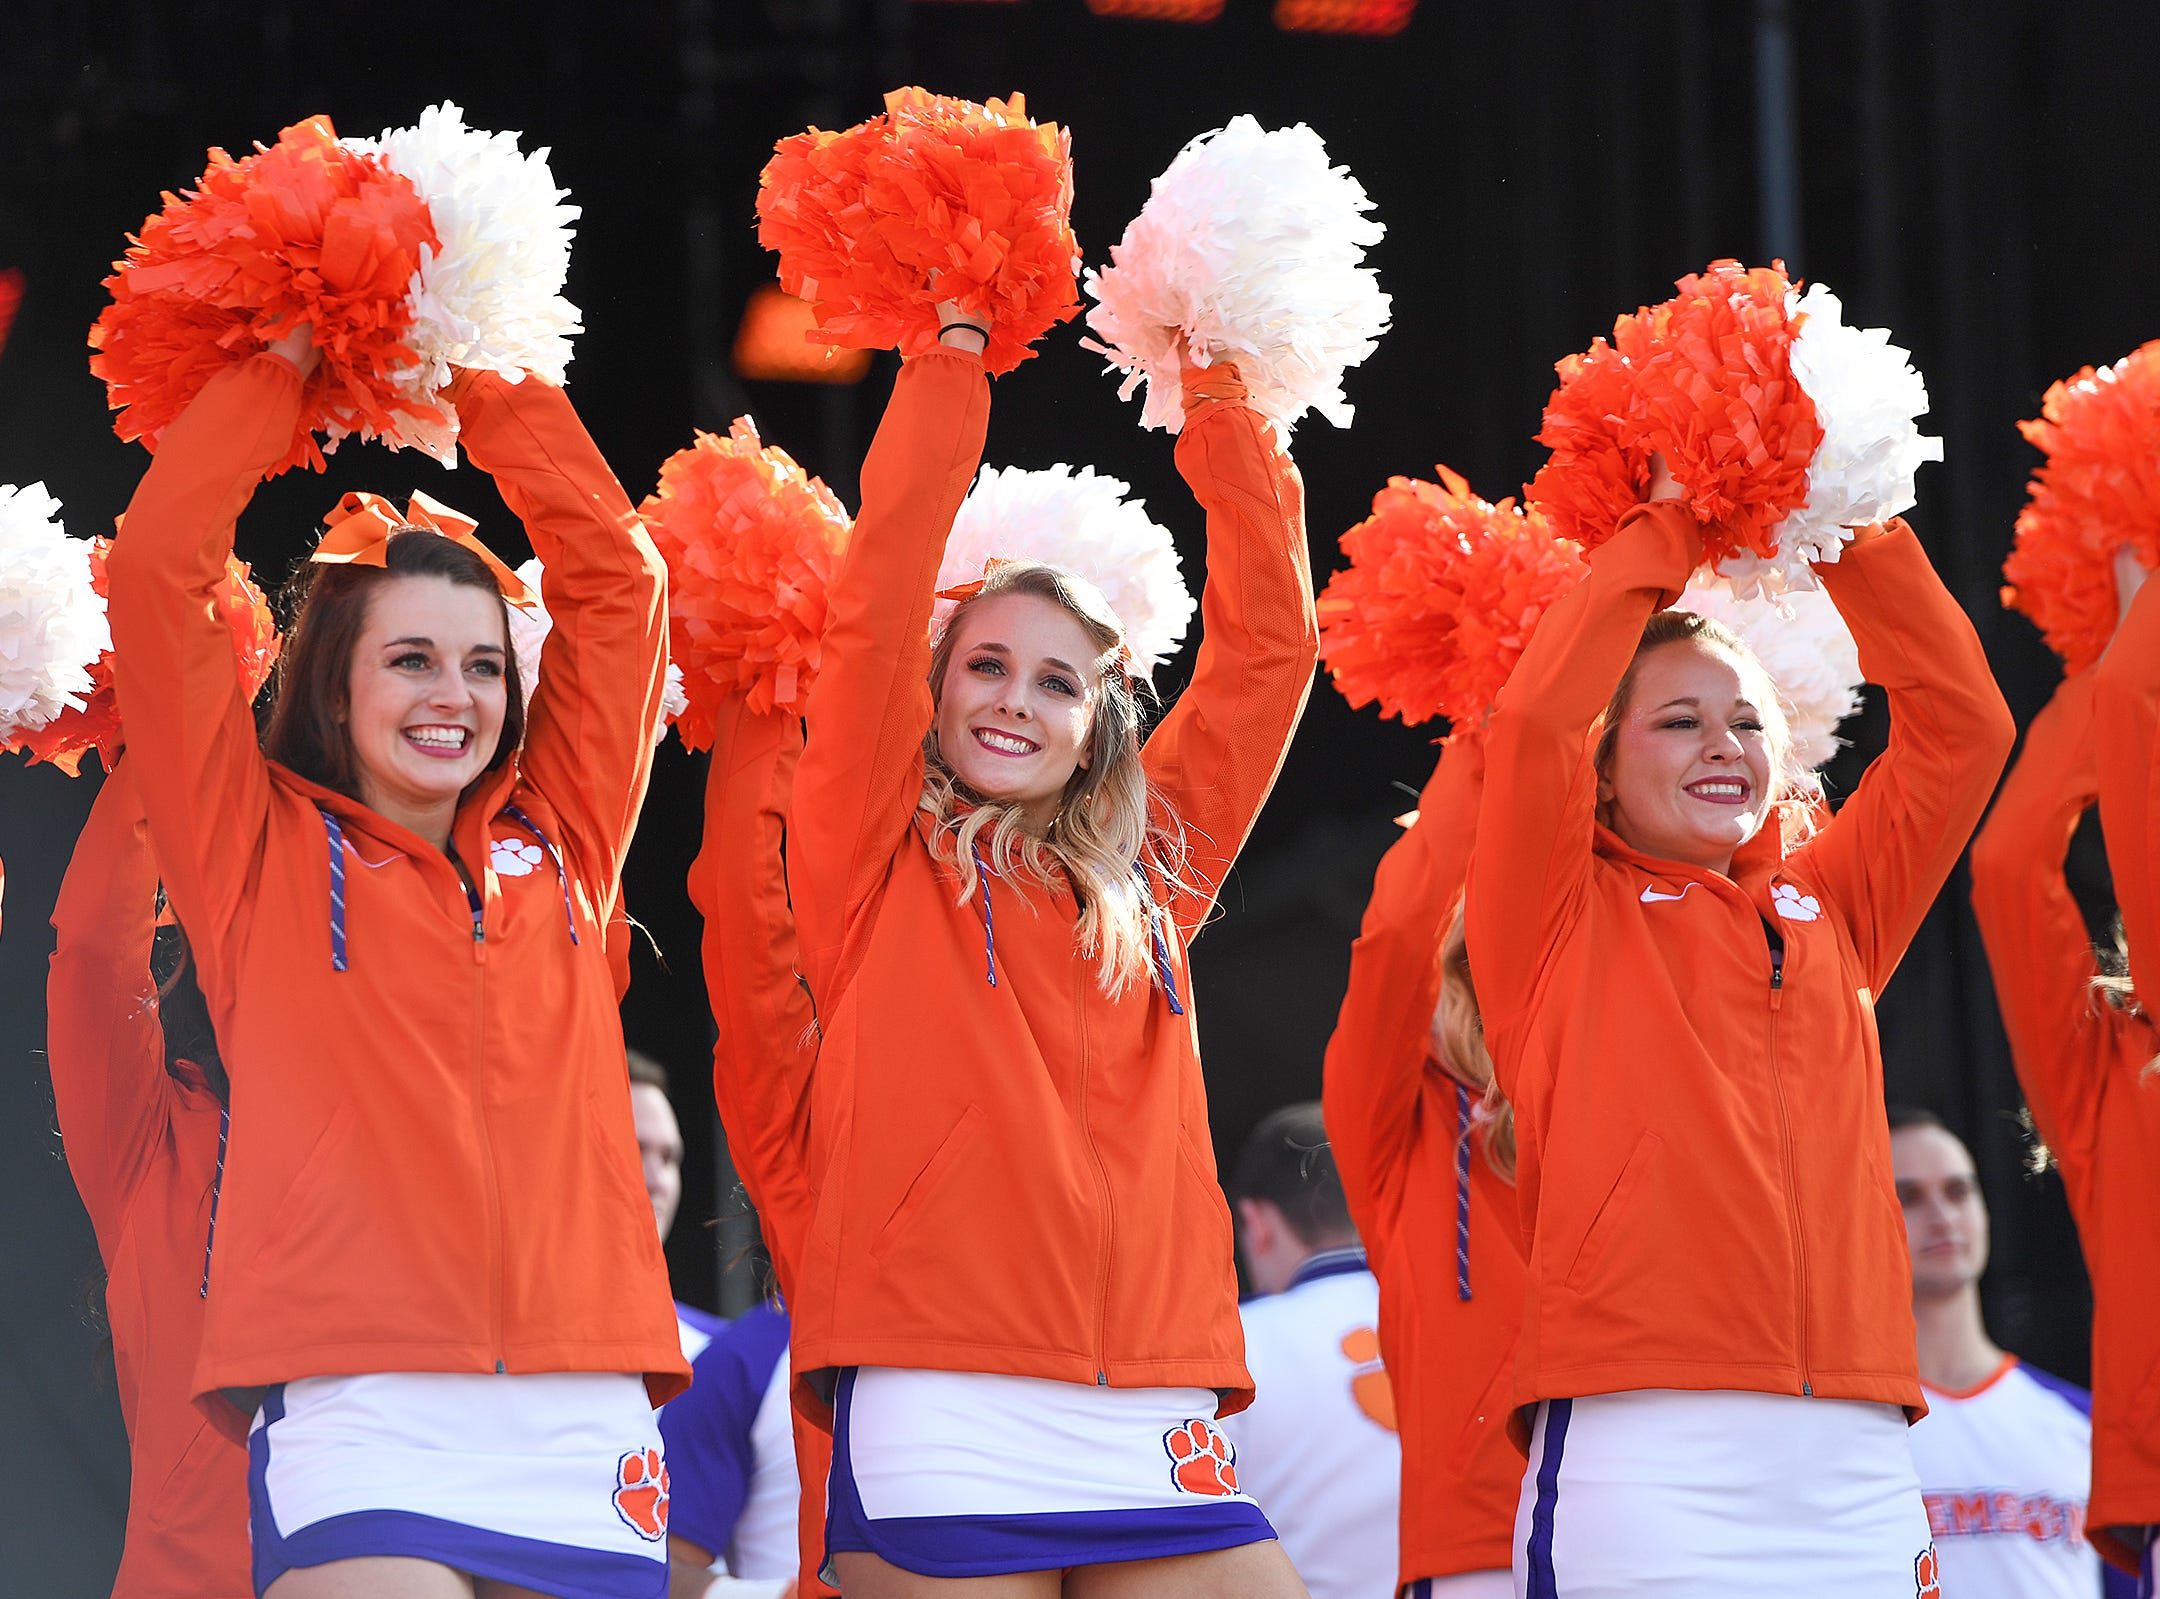 Clemson cheerleaders during the College Football Championship Playoff Tailgate outside Levi's Stadium in Santa Clara, CA Monday, January 7, 2019.